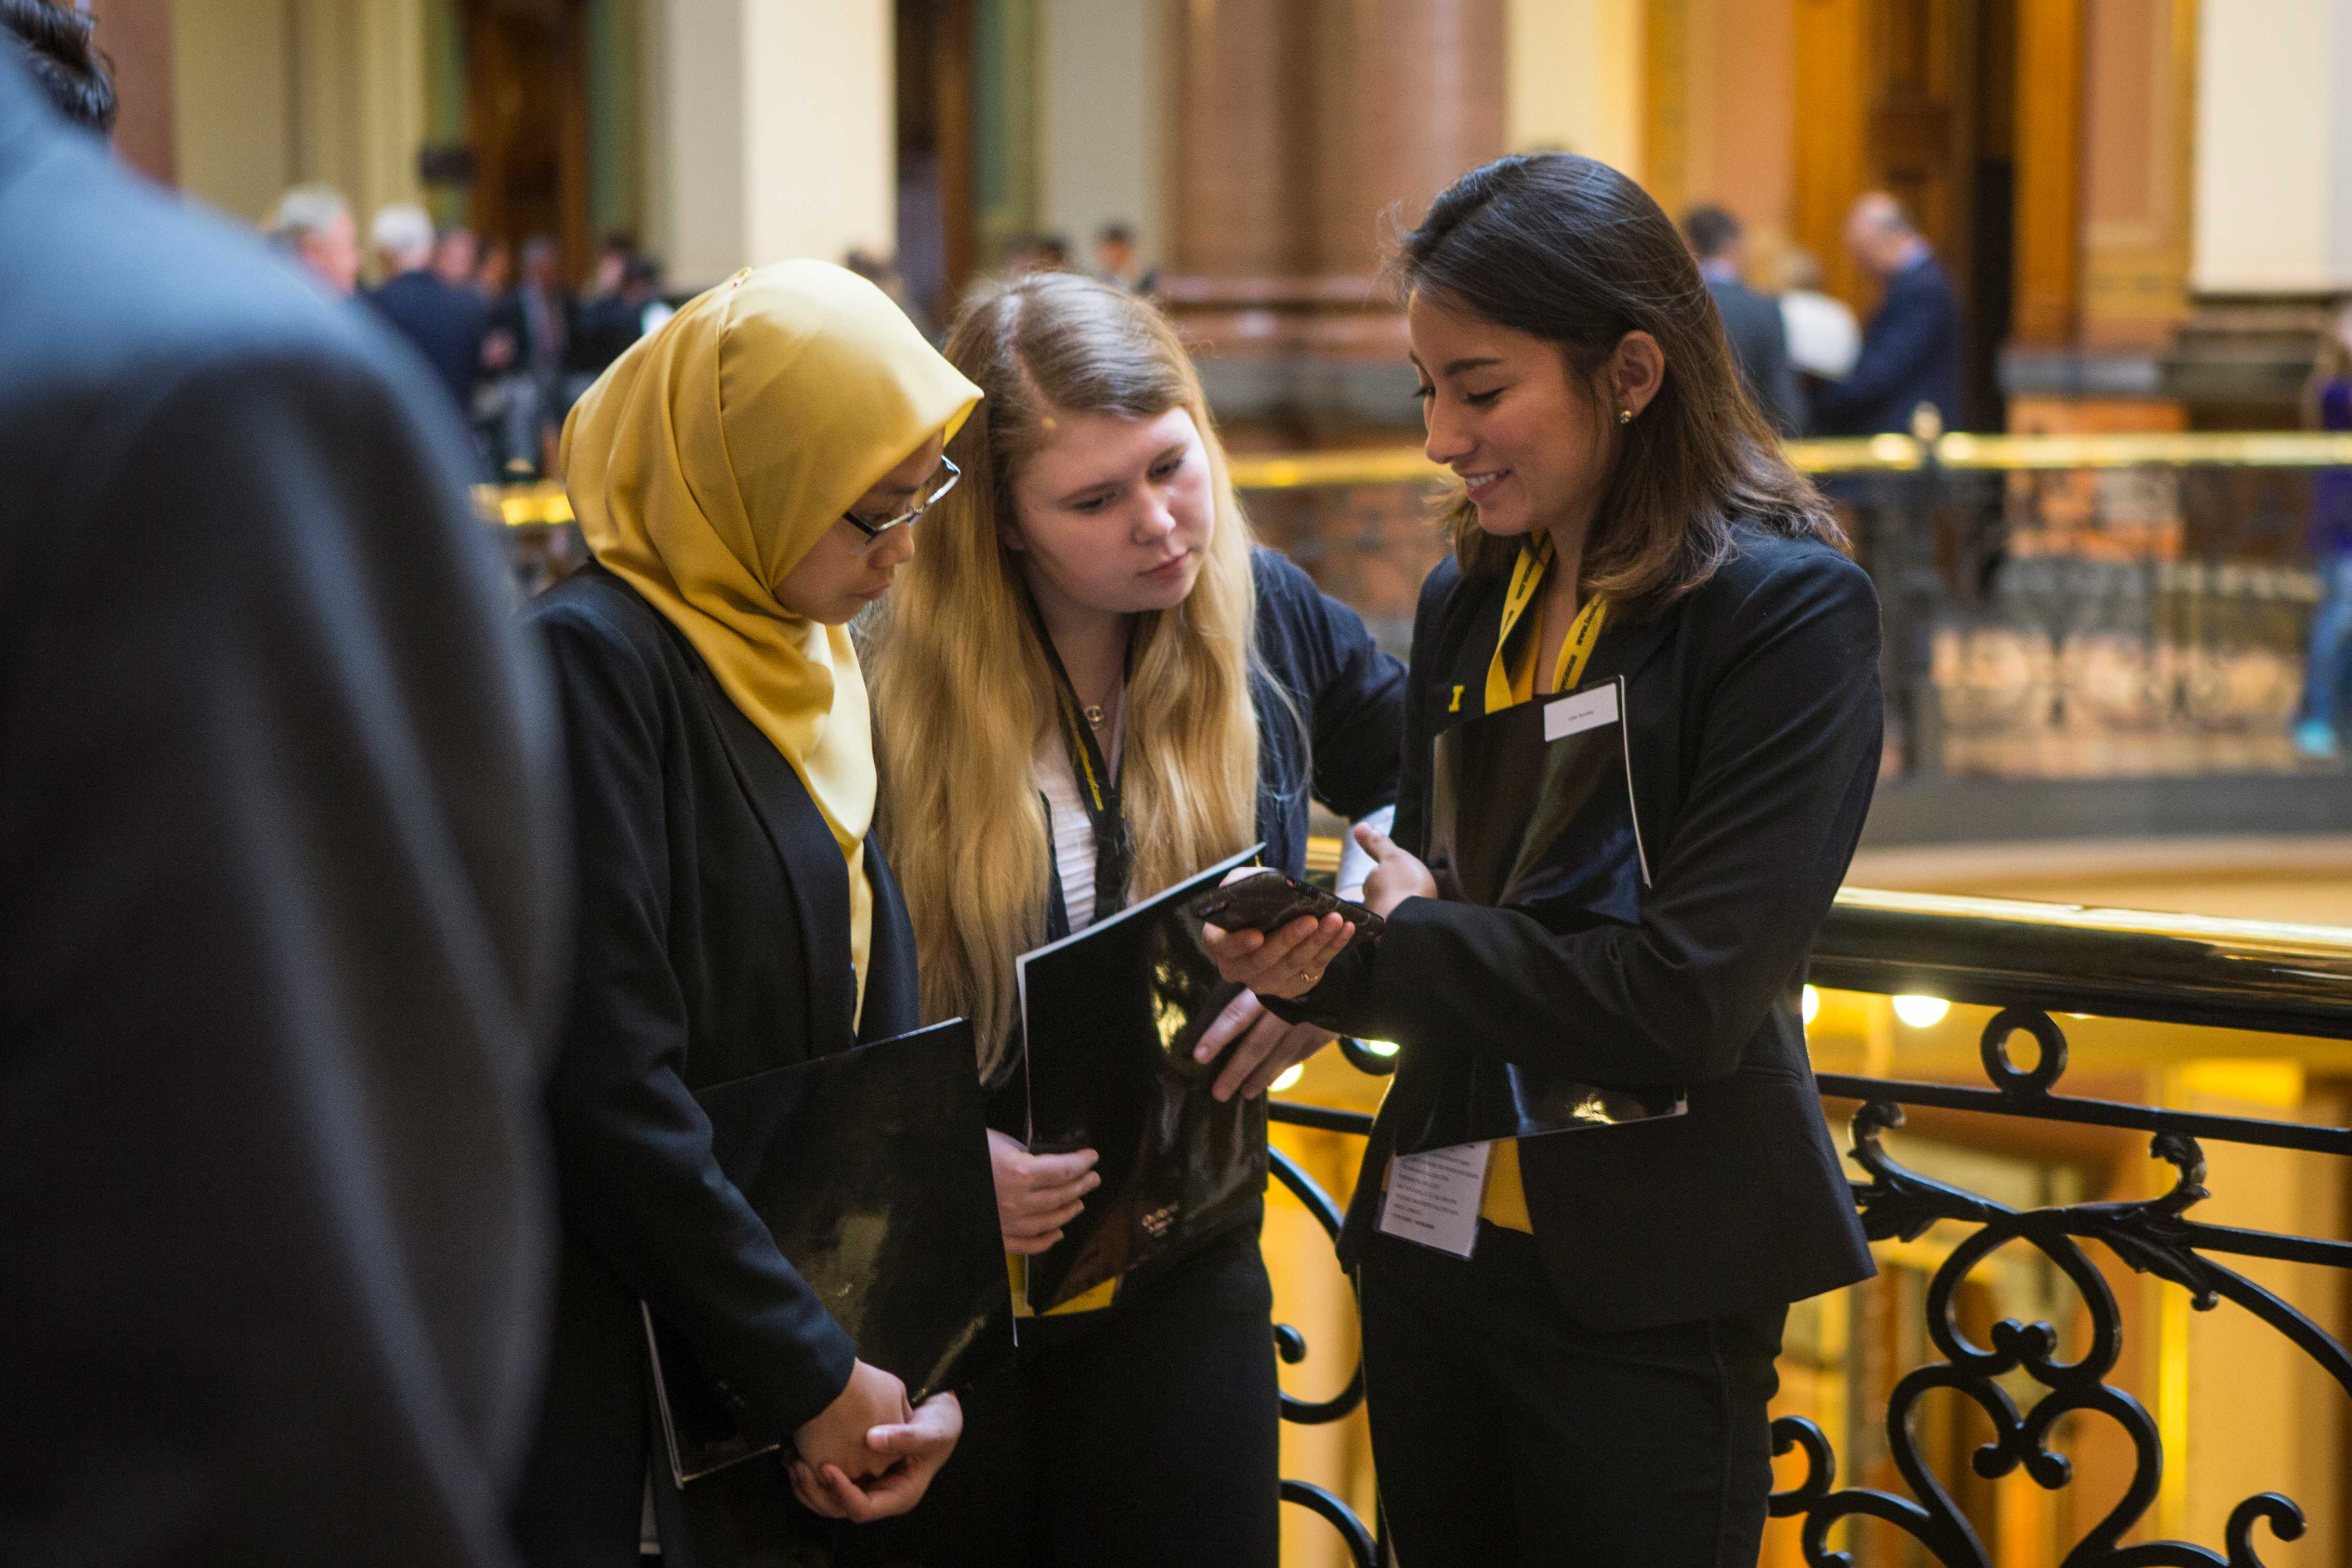 during Hawkeye Caucus at the State Capitol building in Des Moines on Tuesday, Apr. 4, 2017. Hawkeye Caucus is a day to showcase the accomplishments of the University of Iowa community. (The Daily Iowan/Ben Smith)